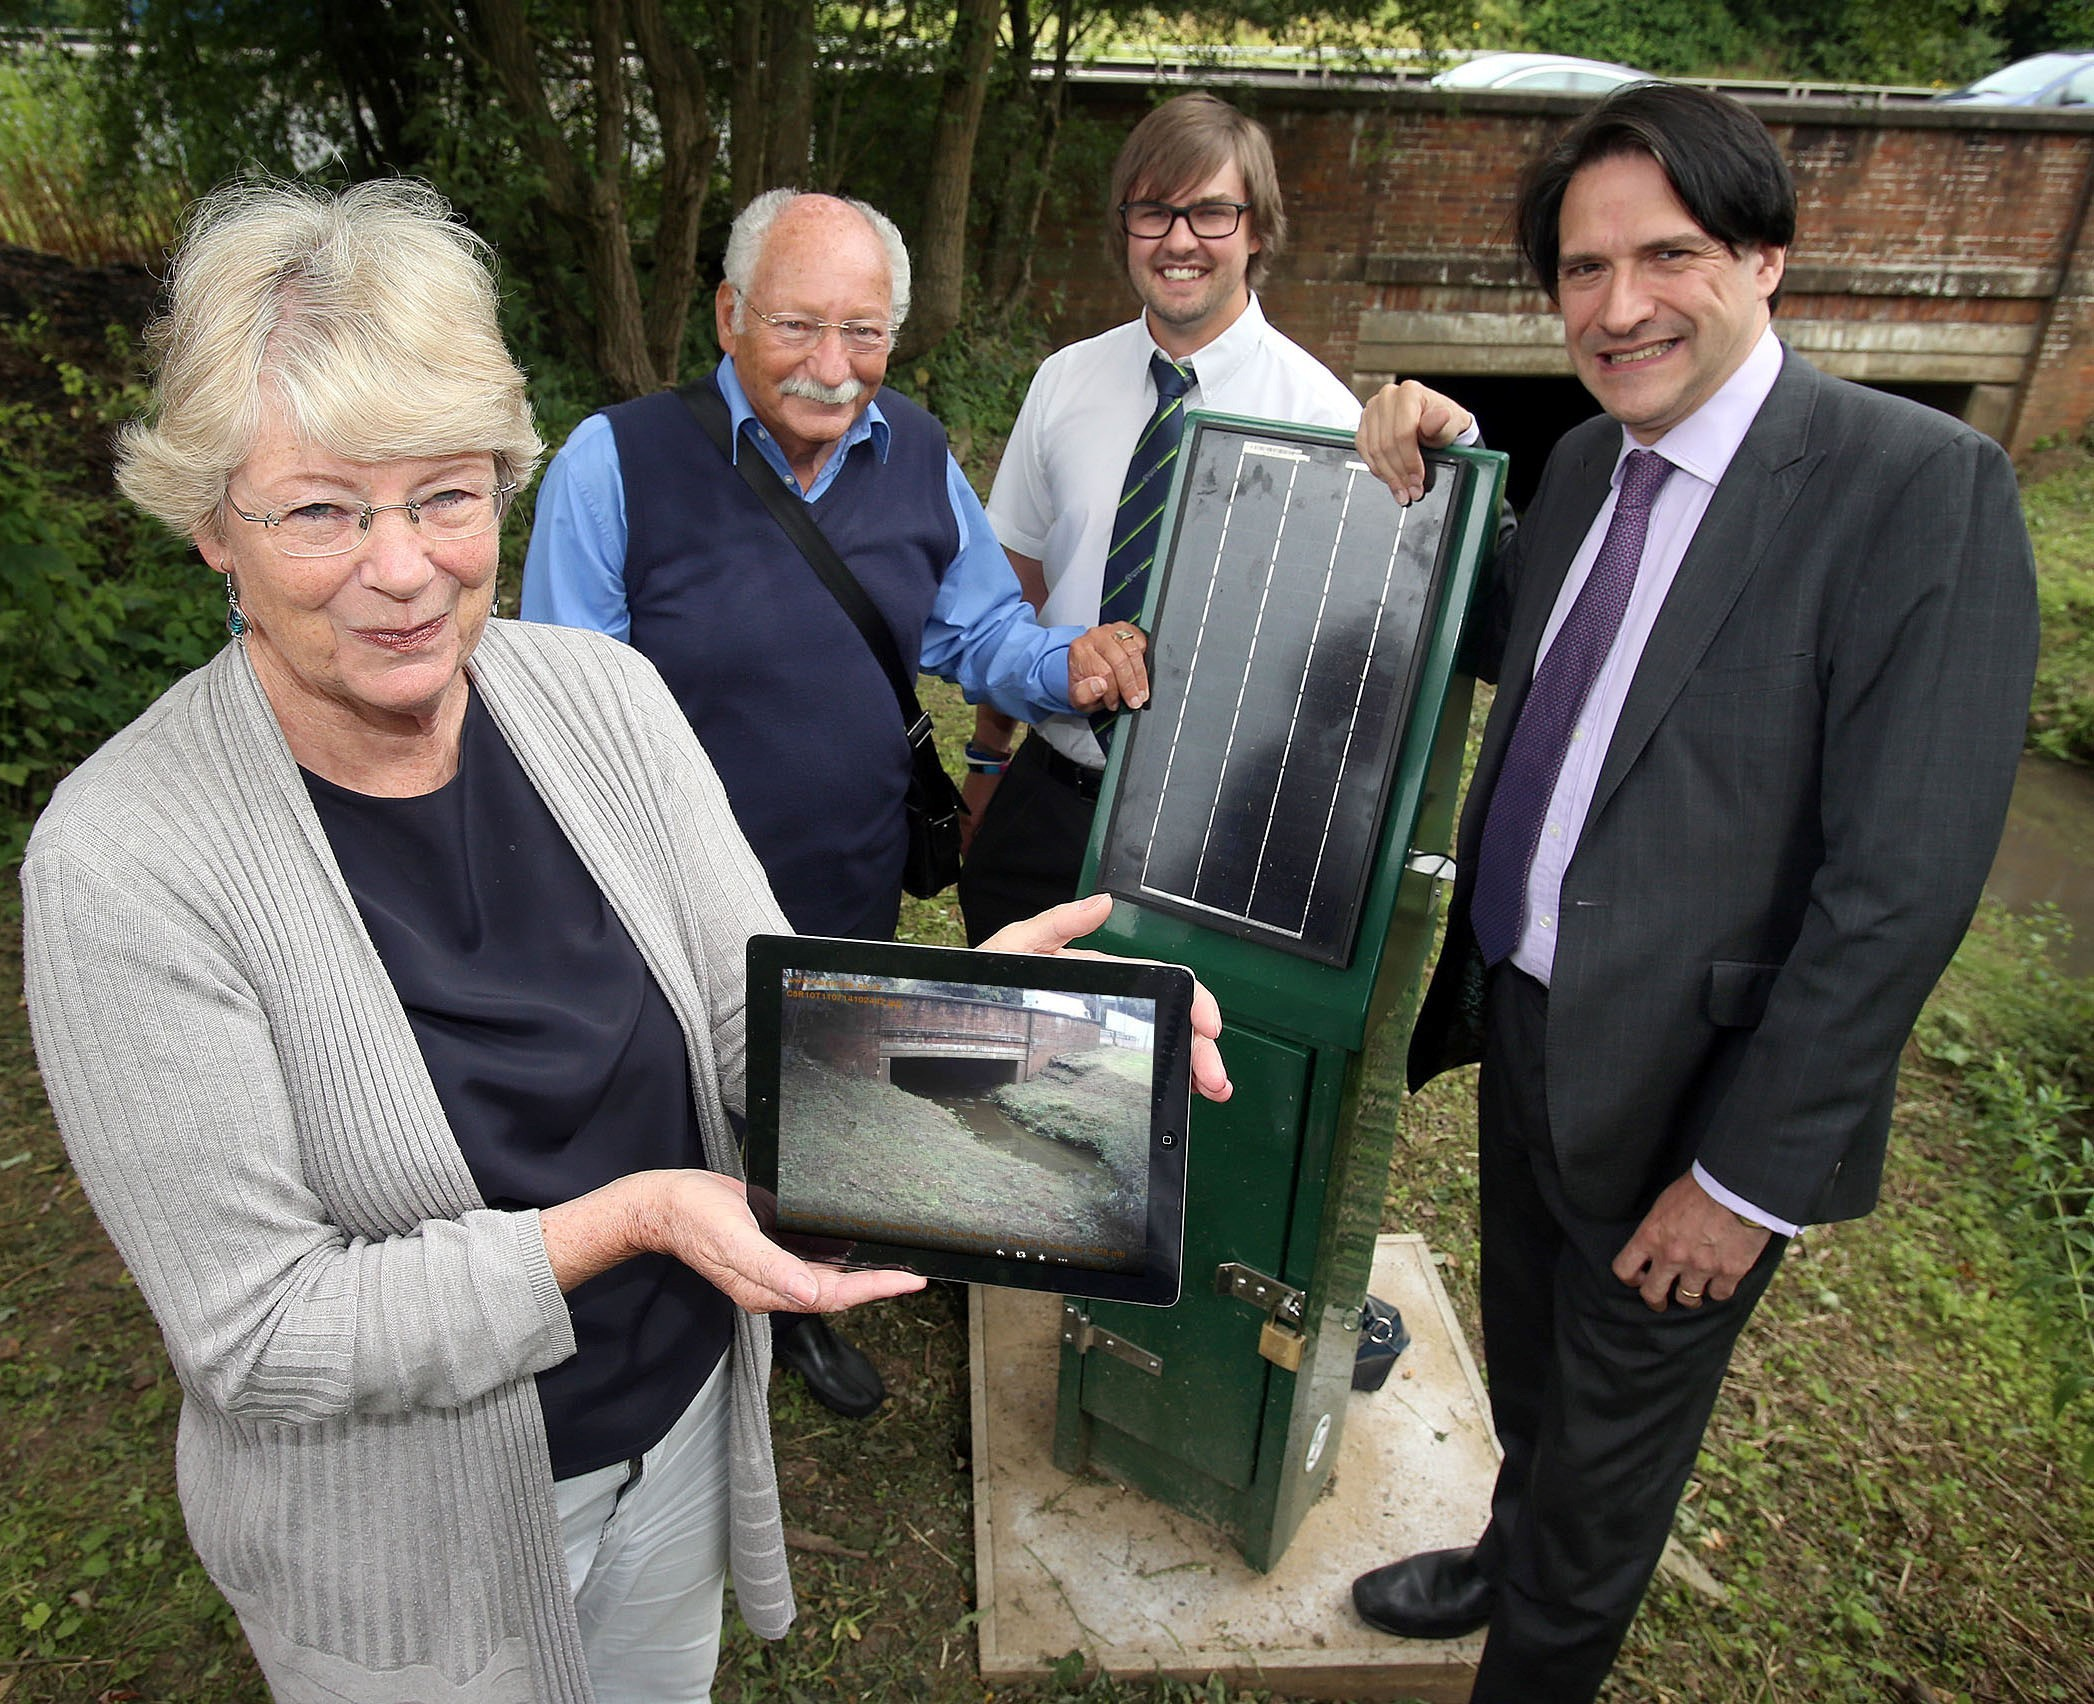 Halesowen resident Maureen Reeves, Illey Brook Flood Committee founder Claude Mosseri with Environment Agency project officer Jamie Sarginson and James Morris MP.